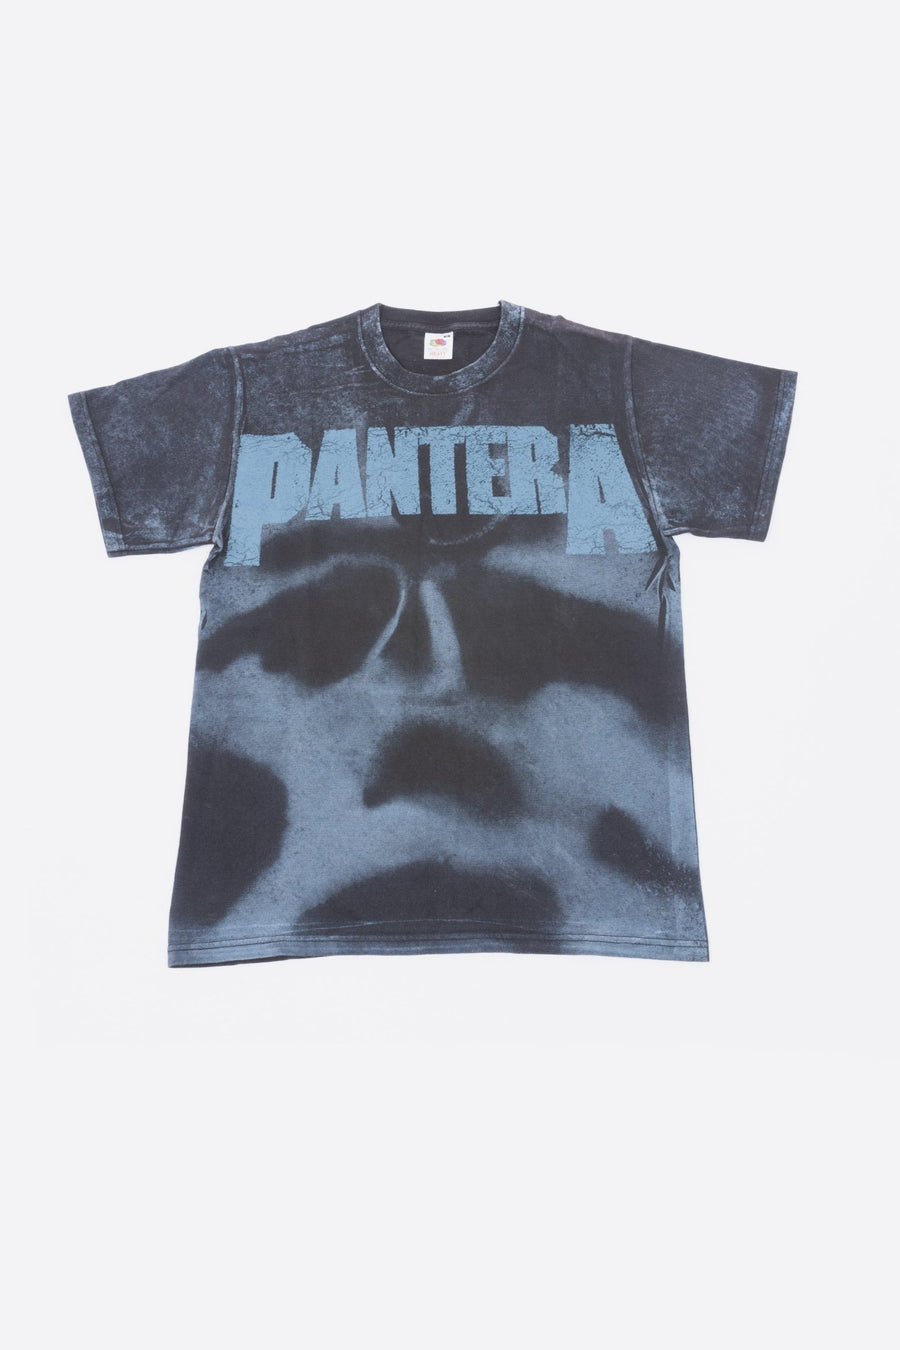 T-shirt Pantera - WASTED PARIS